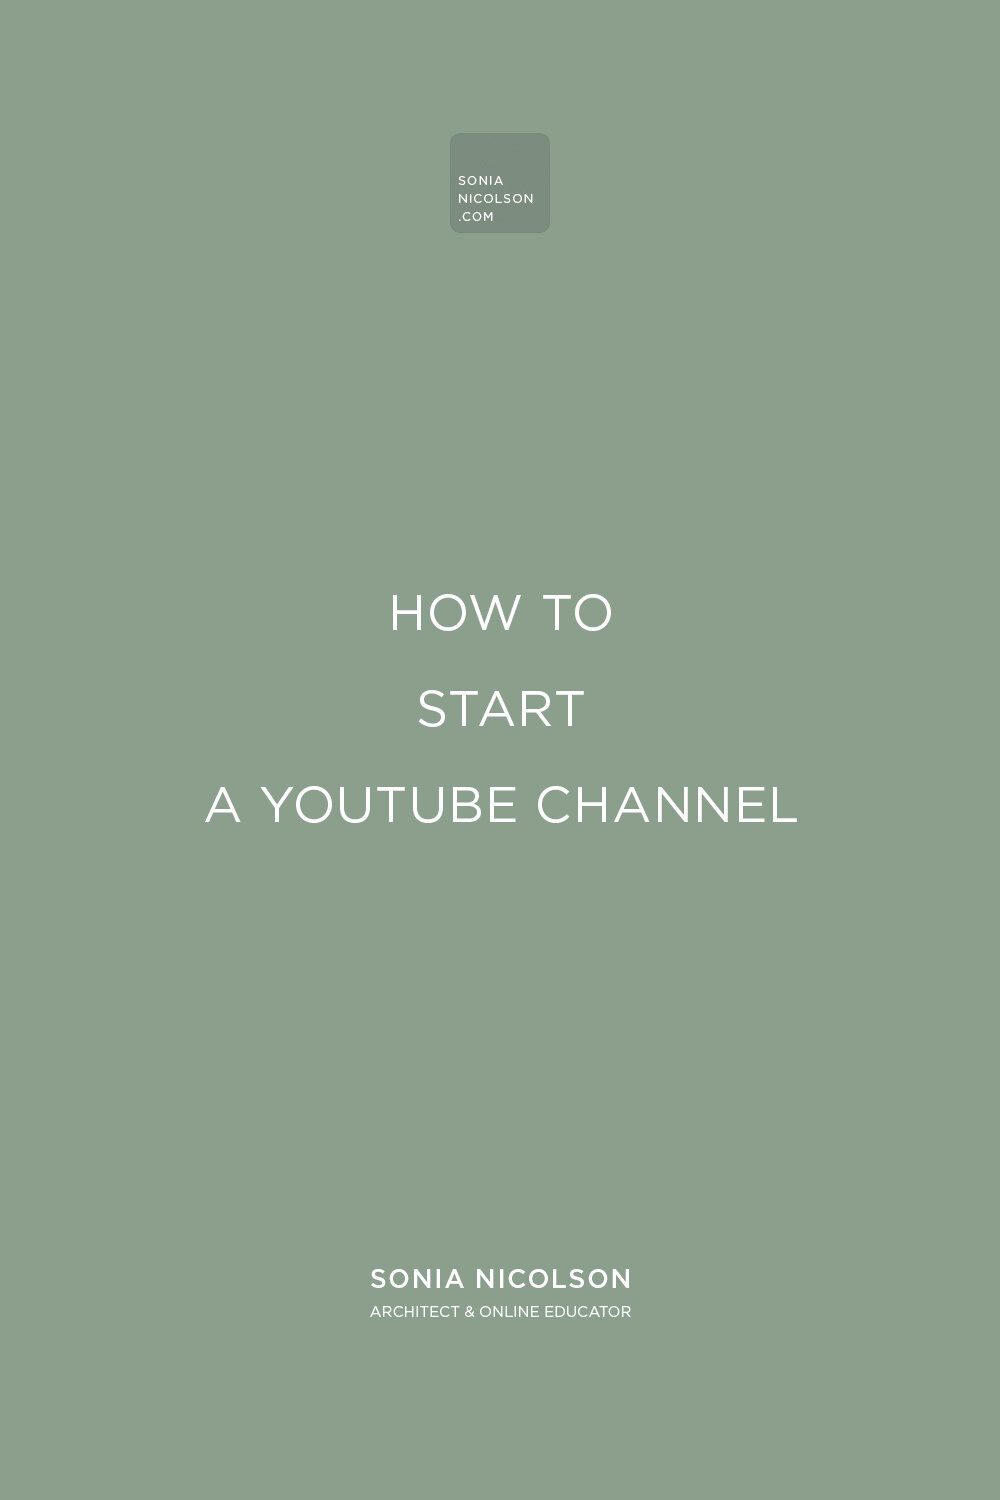 How To Start Your YouTube Channel - Sonia Nicolson